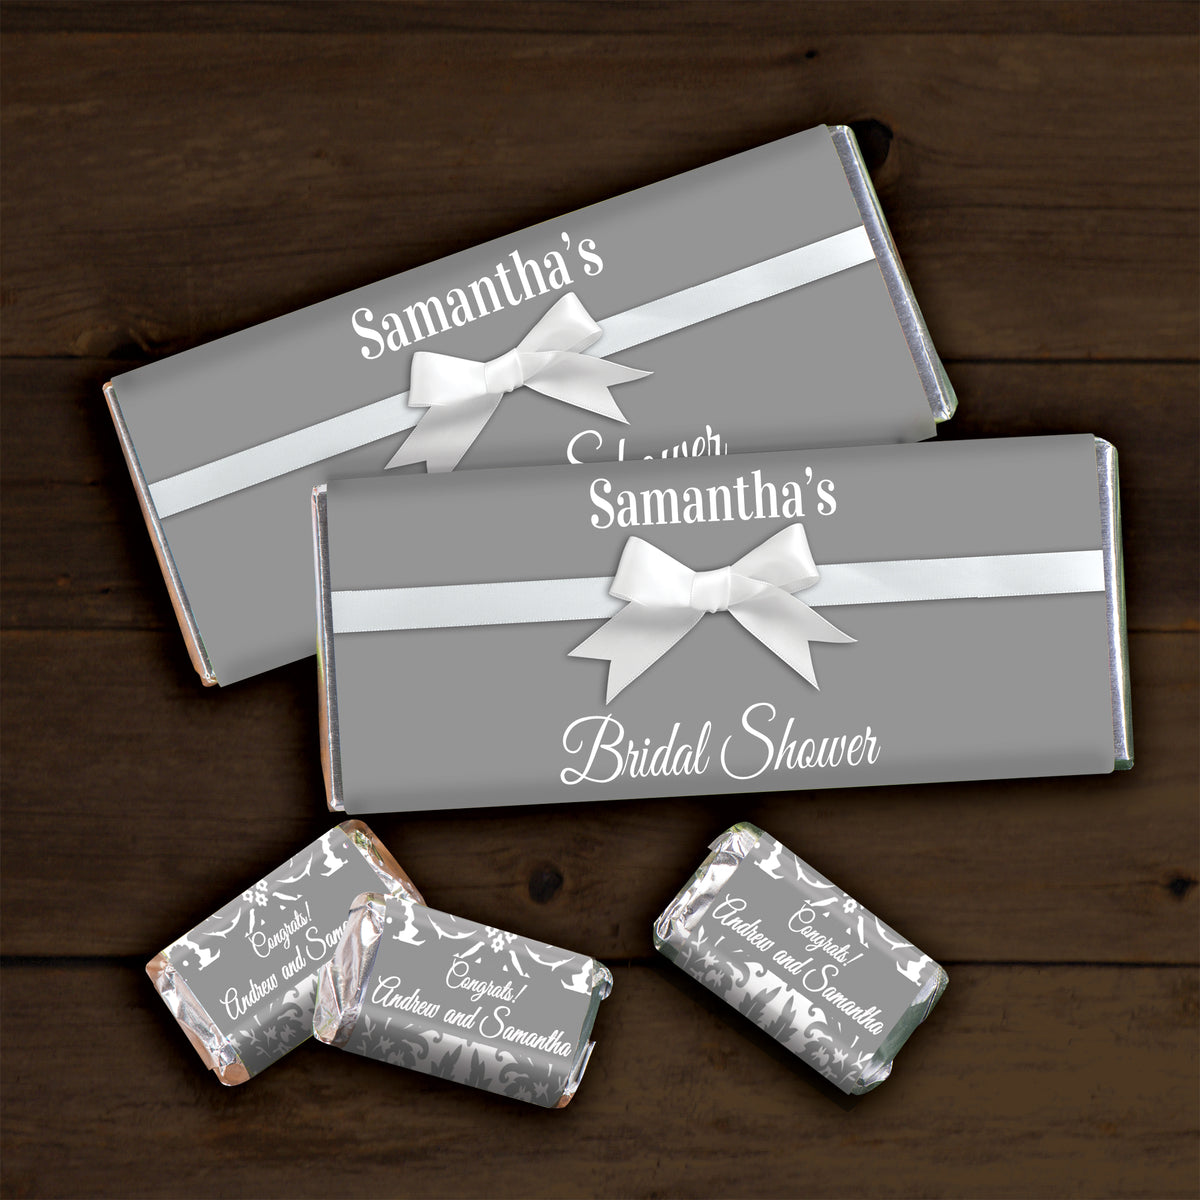 Hershey's Chocolate Tuxedo Personalized Candy Bars